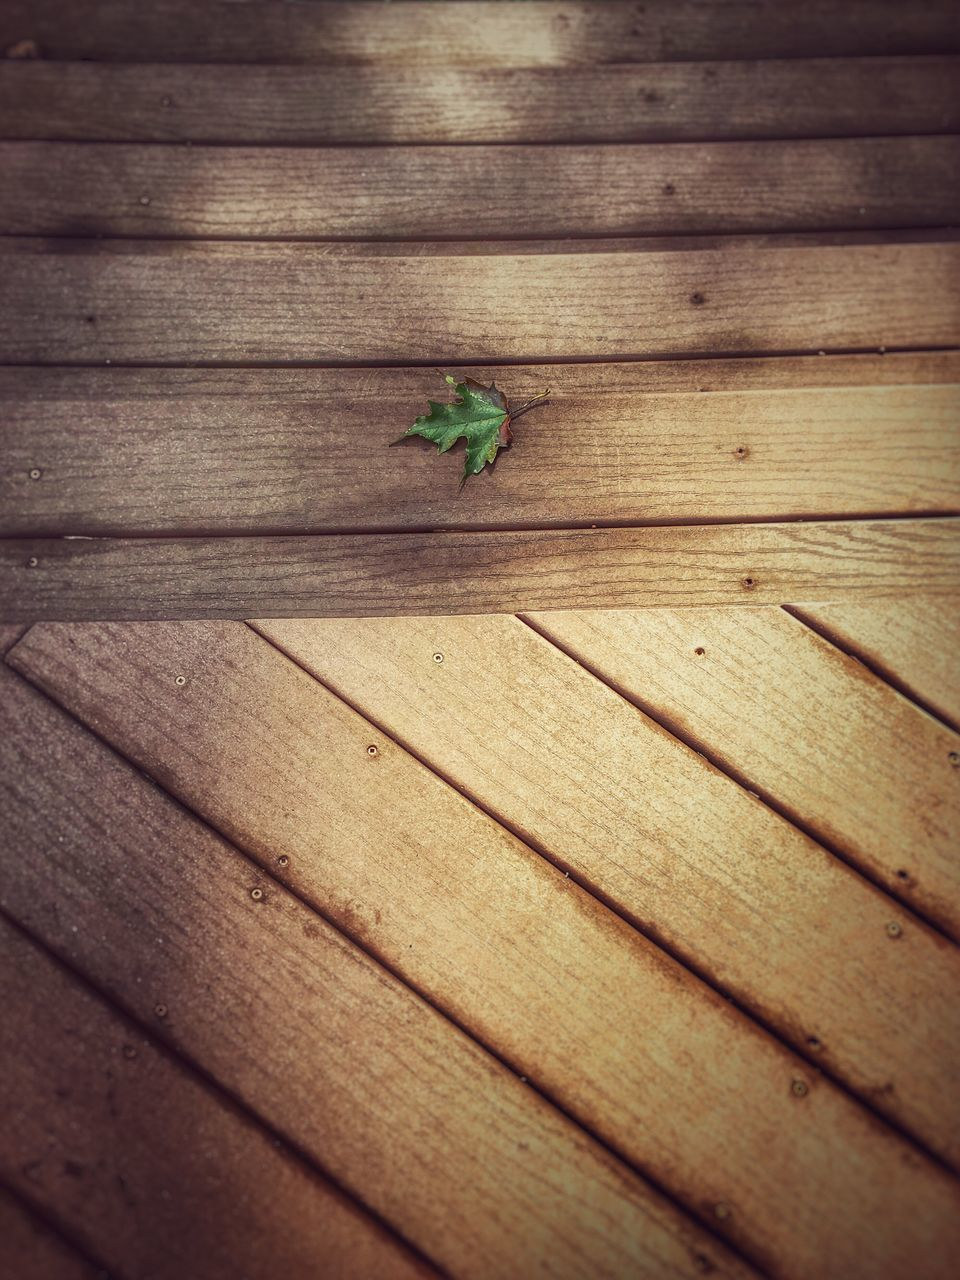 wood - material, insect, high angle view, nature, no people, indoors, close-up, animal themes, day